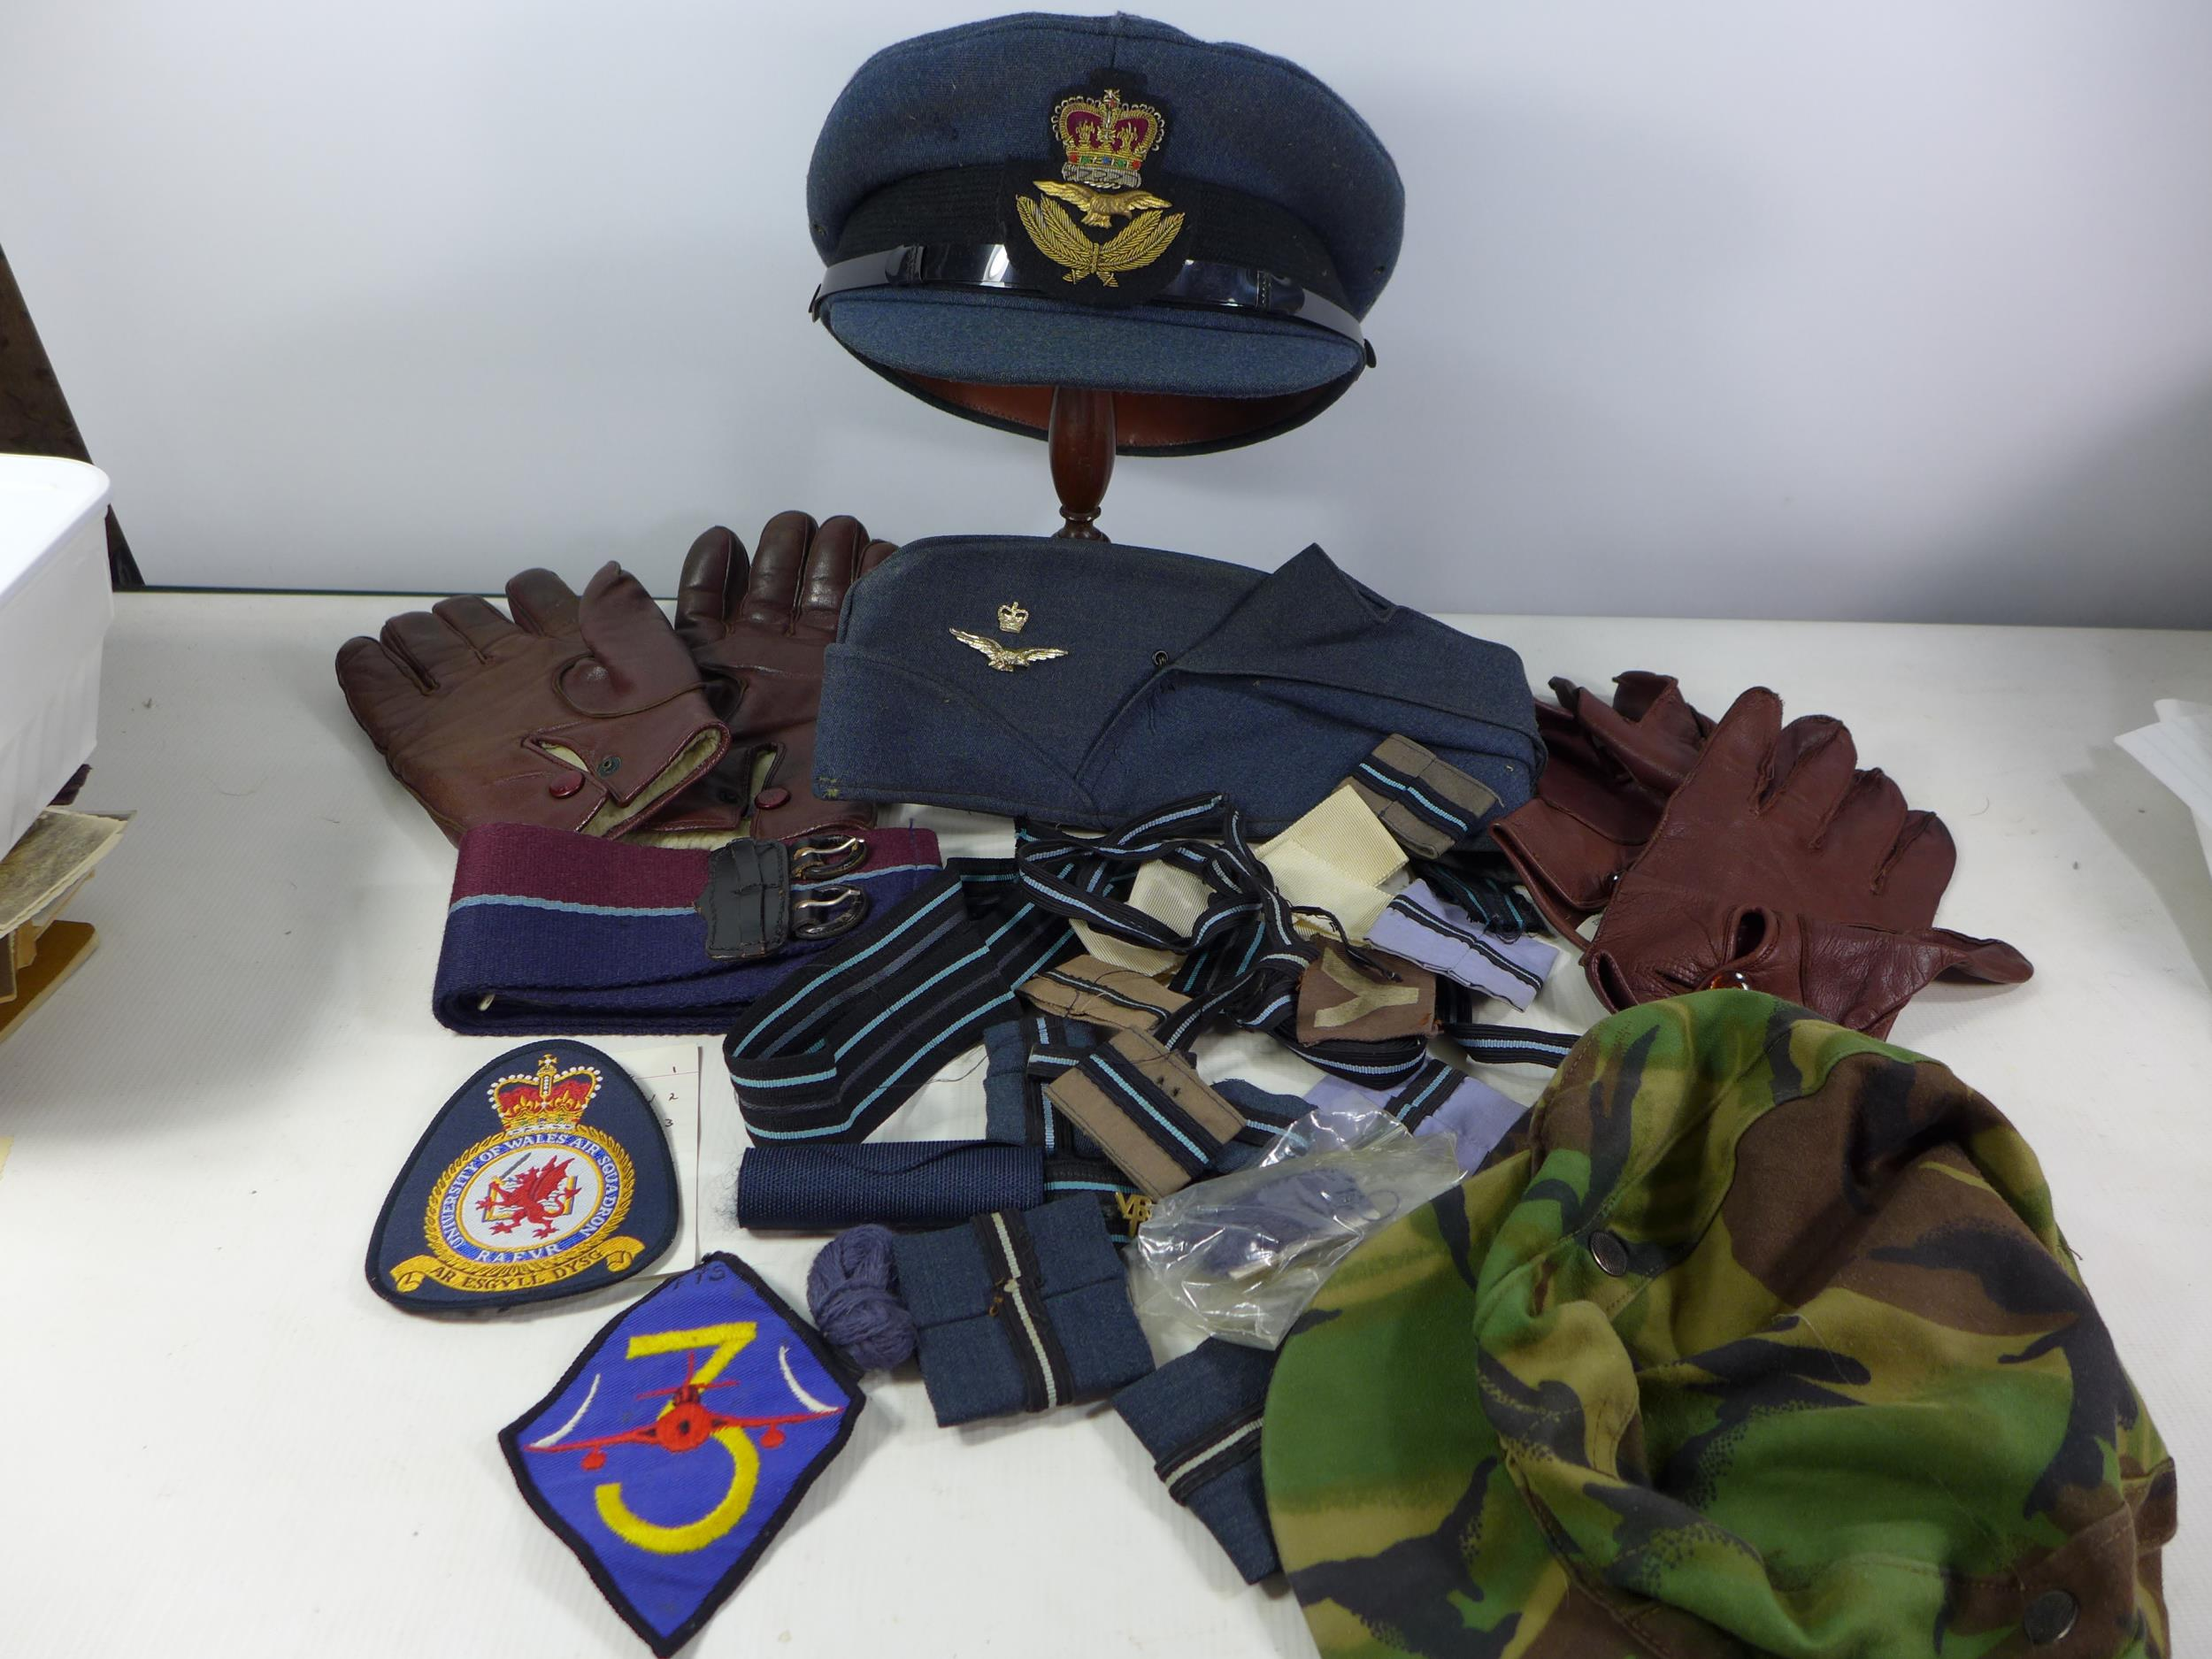 A COLLECTION OF RAF MEMORABILIA COMPRISING CAP, GLOVES, BELTS, FLASHES ETC